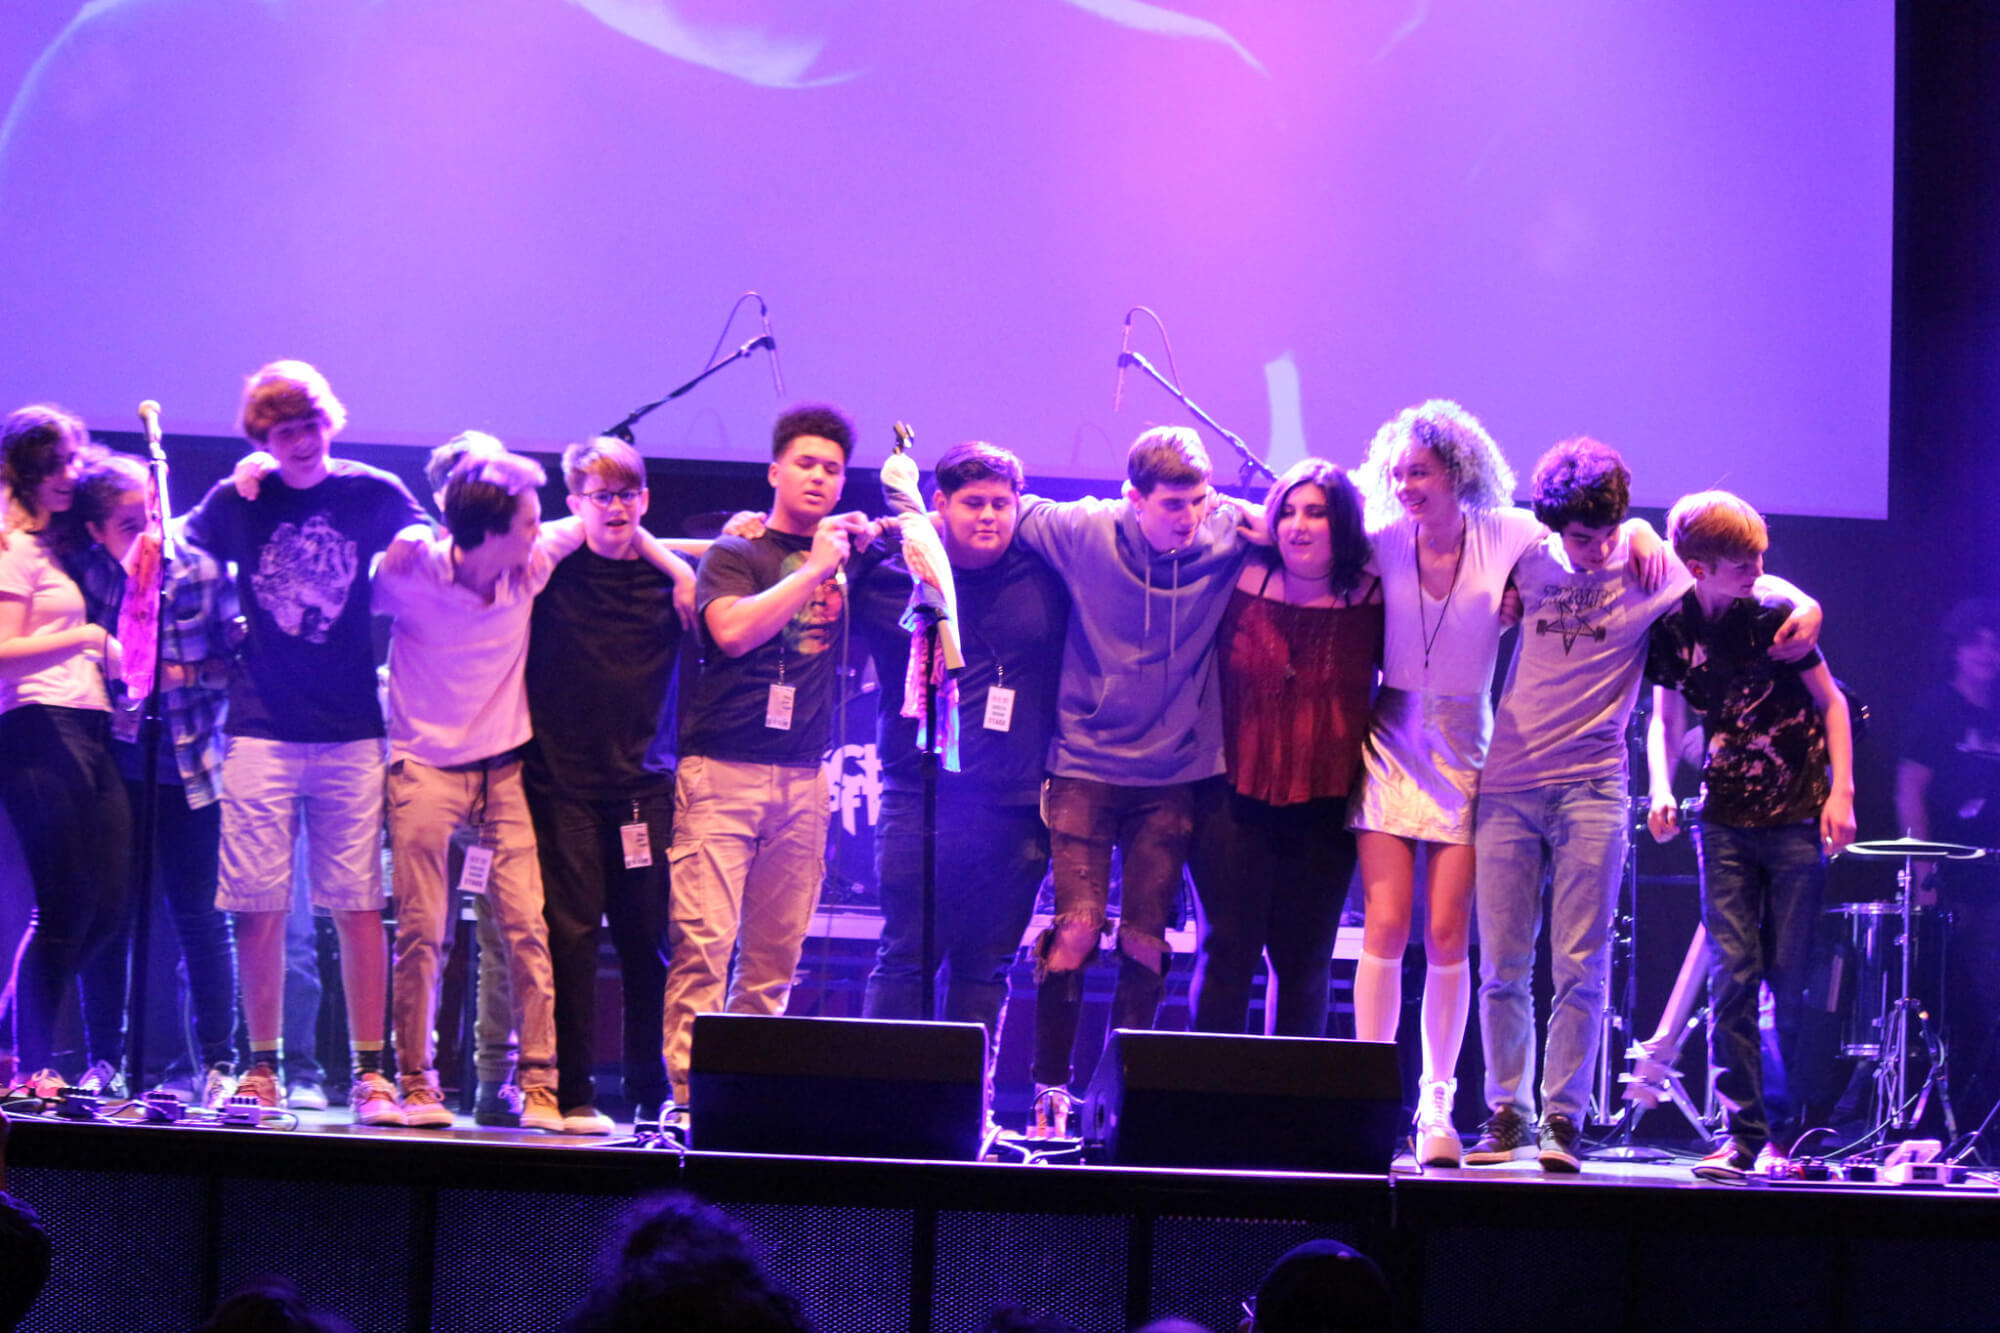 Finale from our shows at The Fillmore Silver Spring.